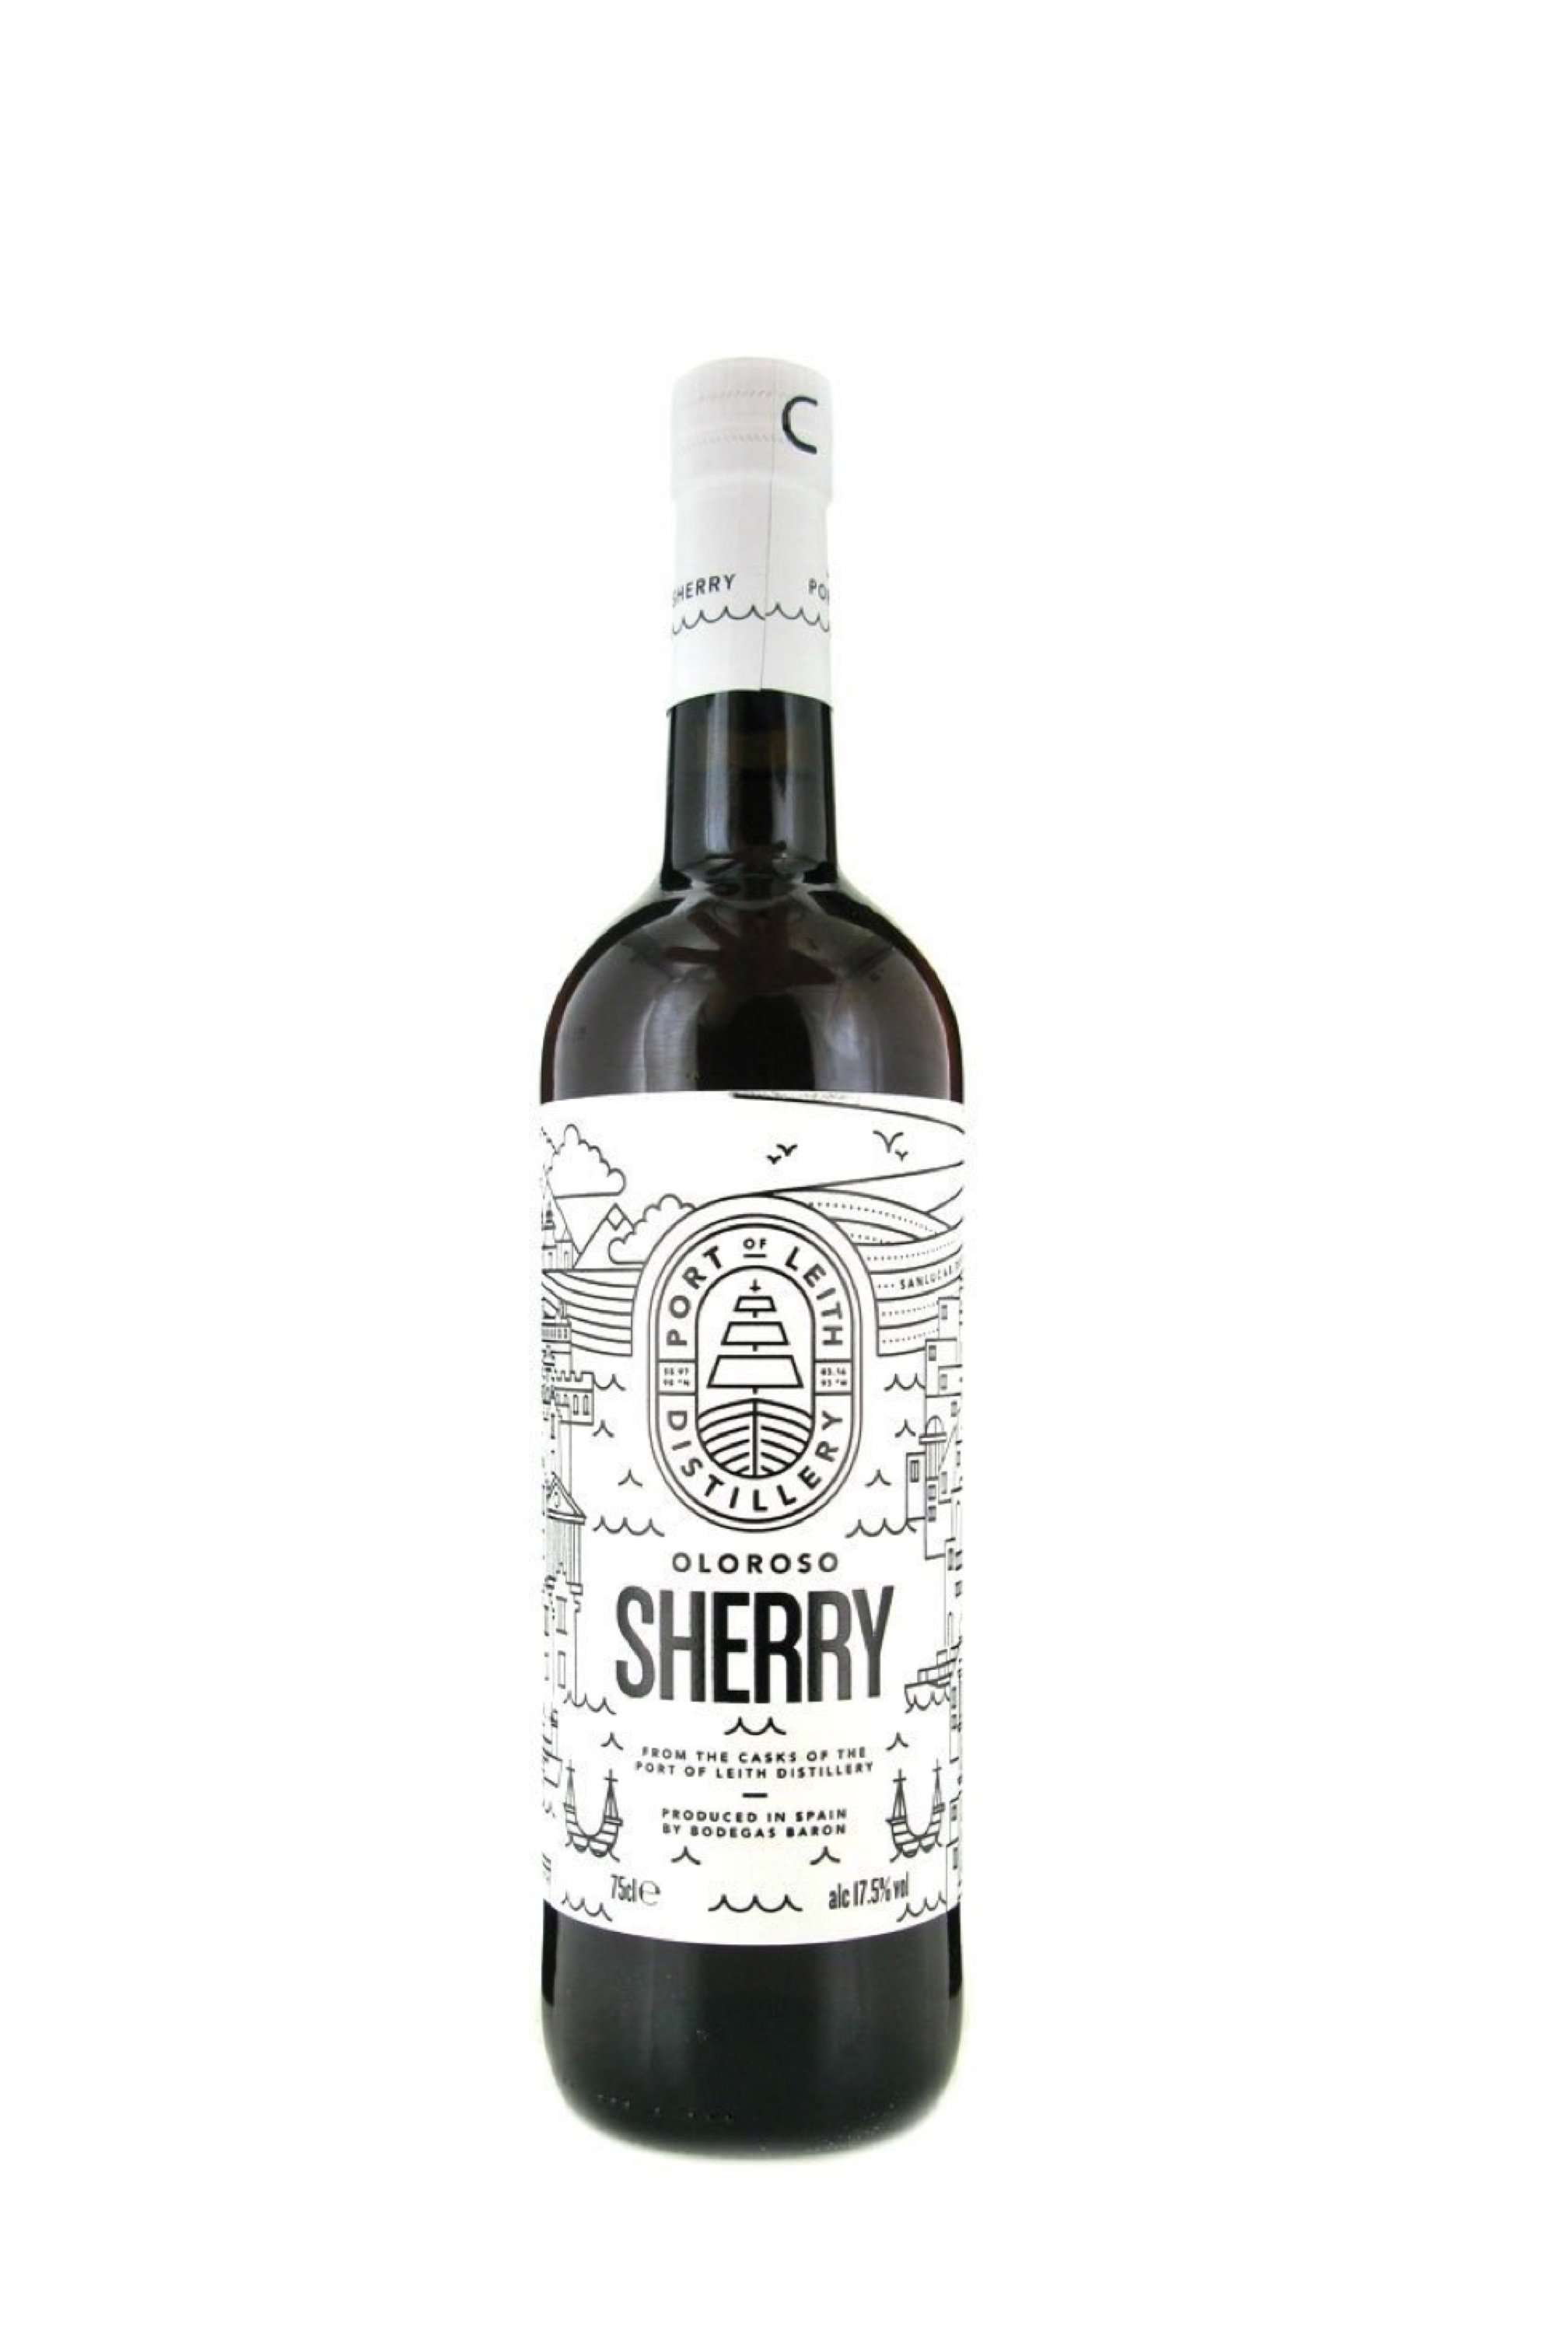 Leith Olorosso Sherry